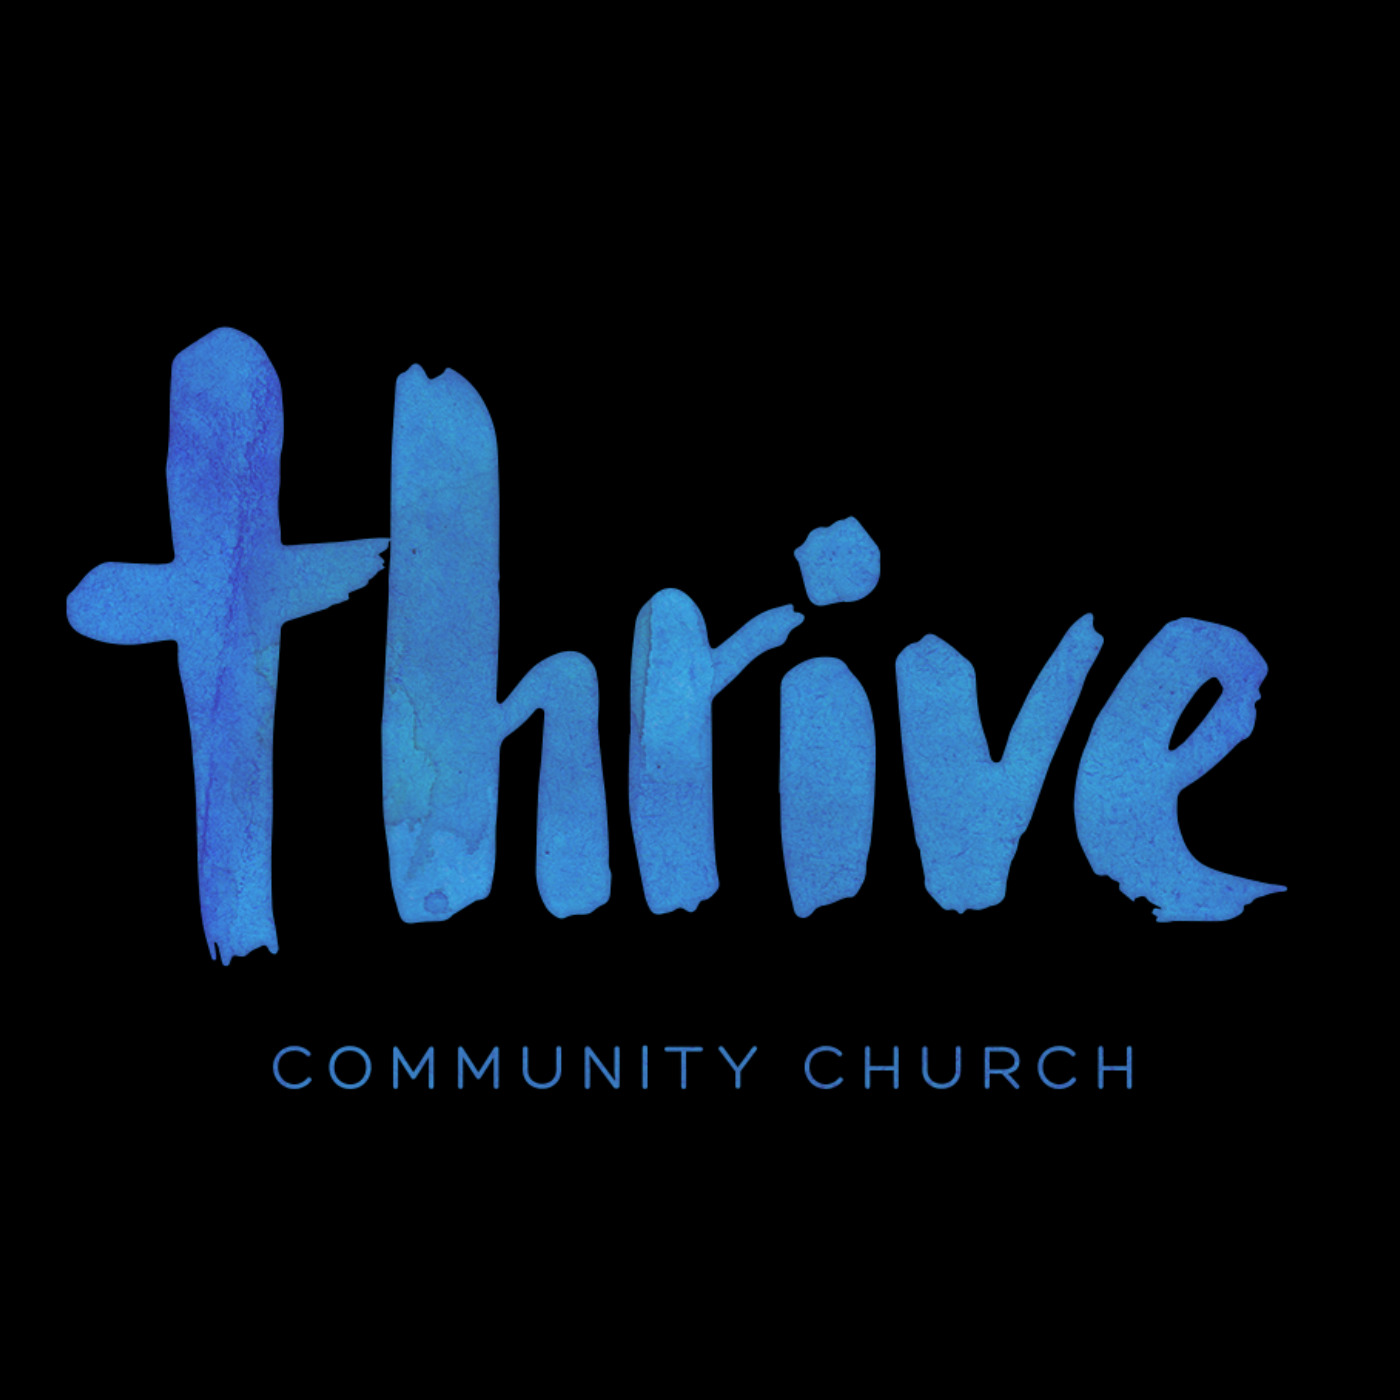 THRIVE COMMUNITY CHURCH, Mike Hardie